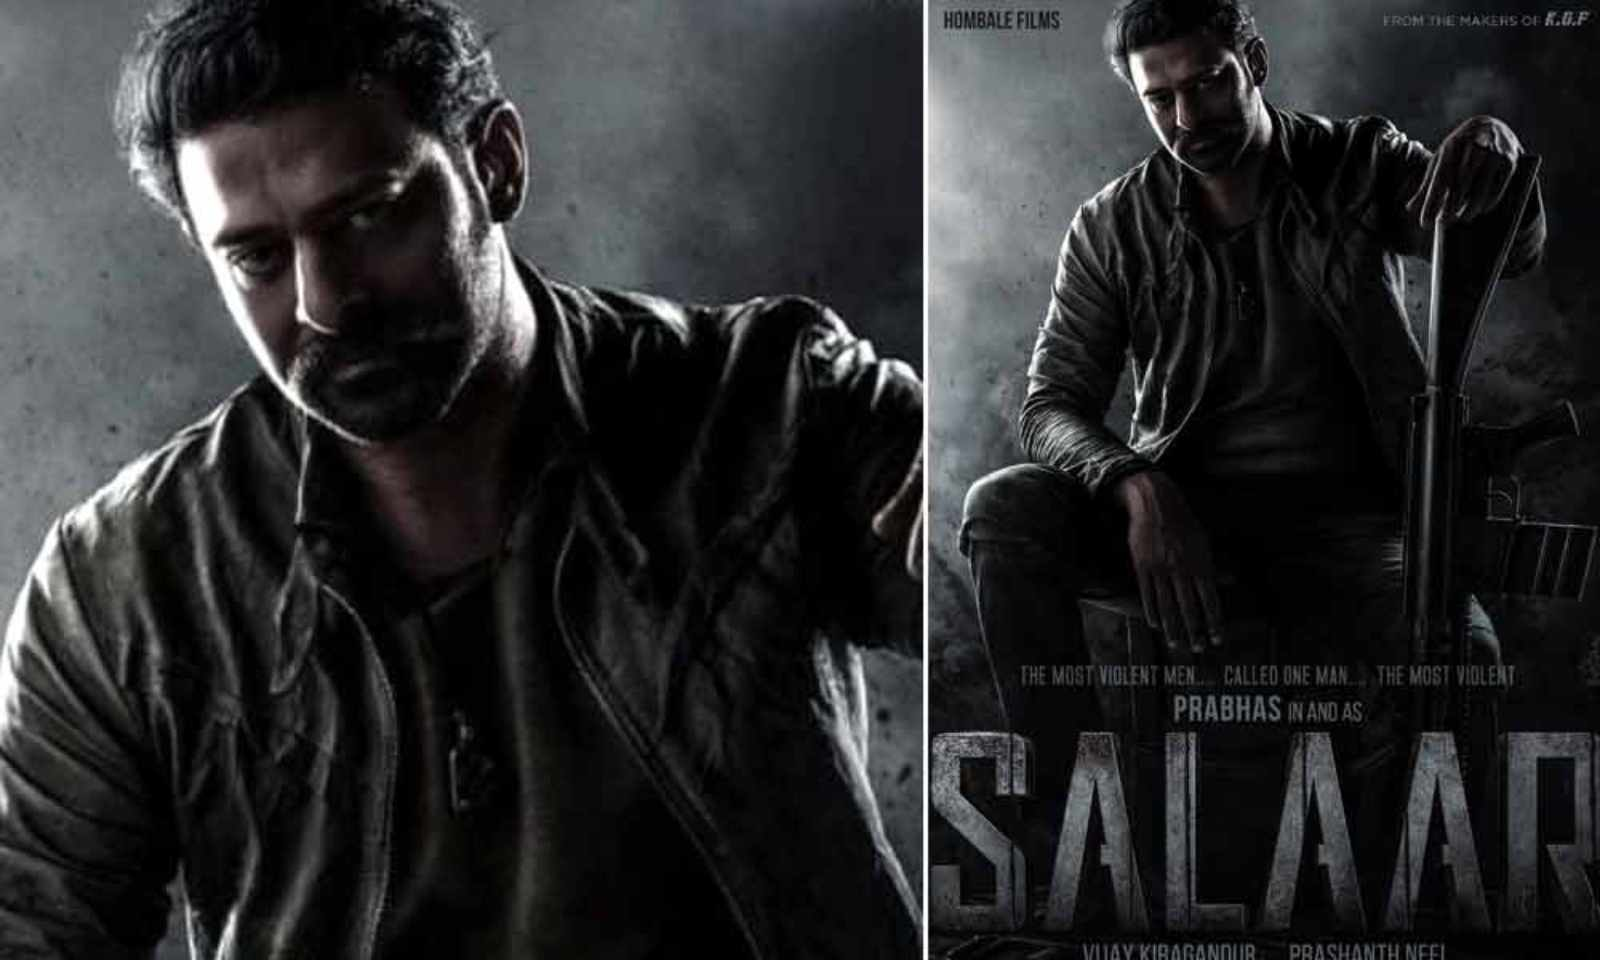 prabhas-Is this Prabhas Salar Story - Easy to understand for those who have seen KGF.